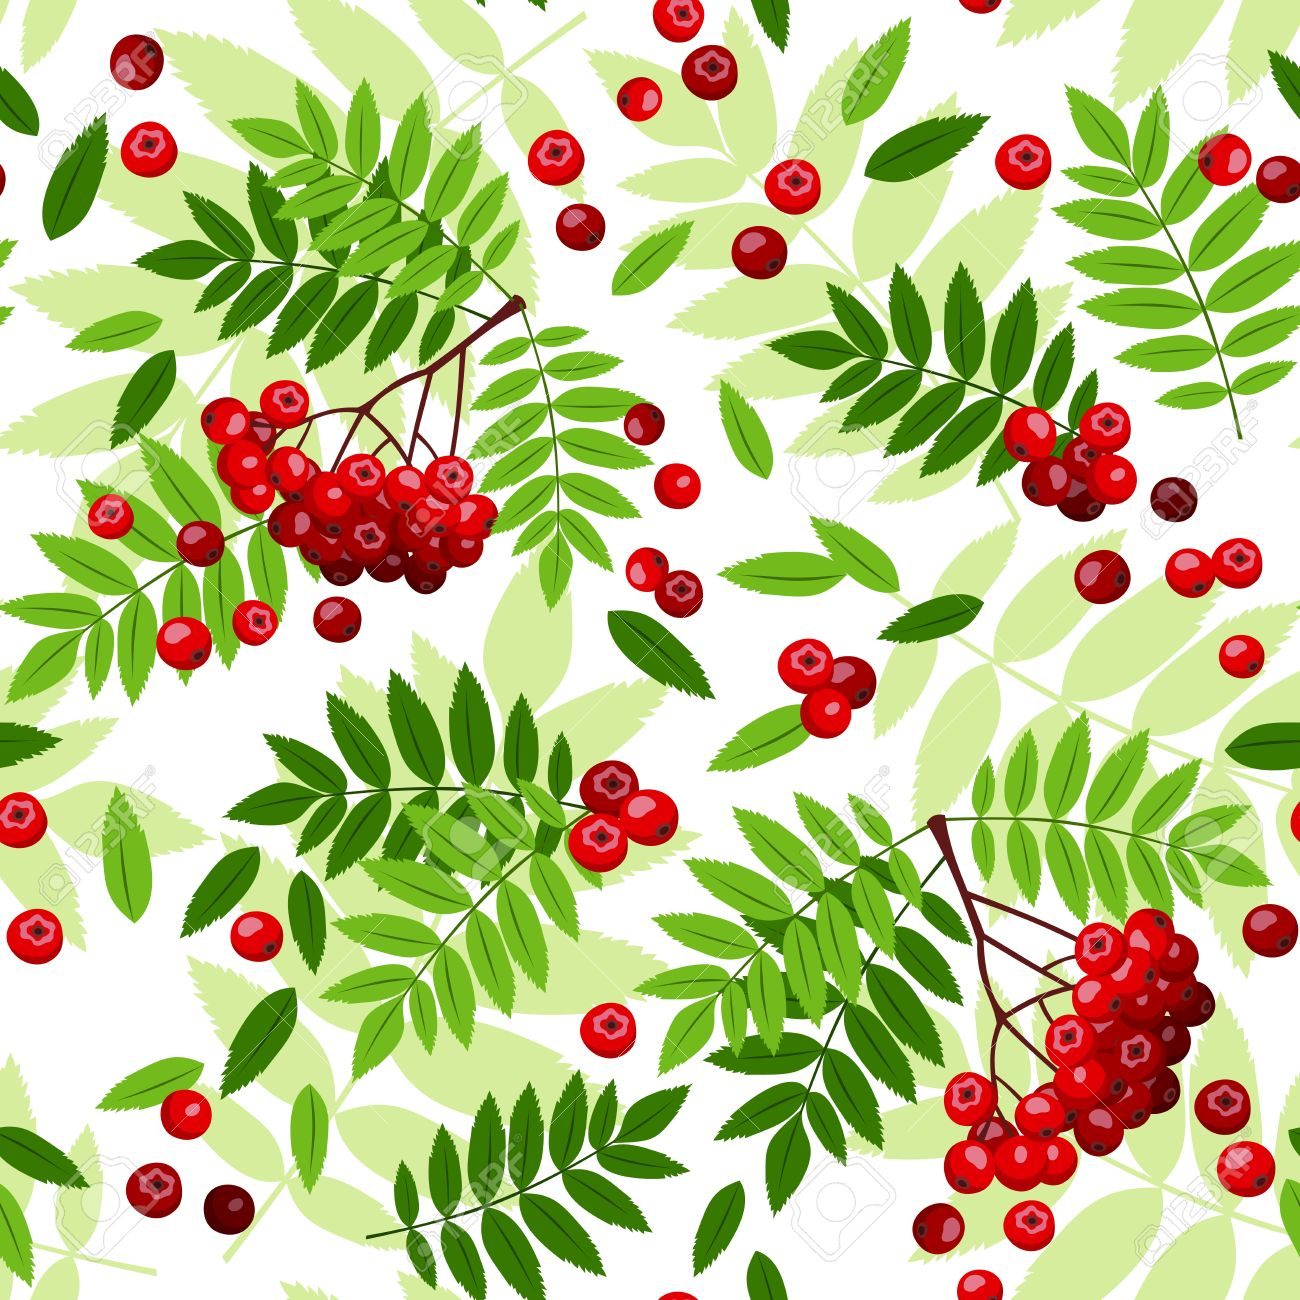 Seamless Pattern With Rowan Leaves And Berries Vector Illustration.